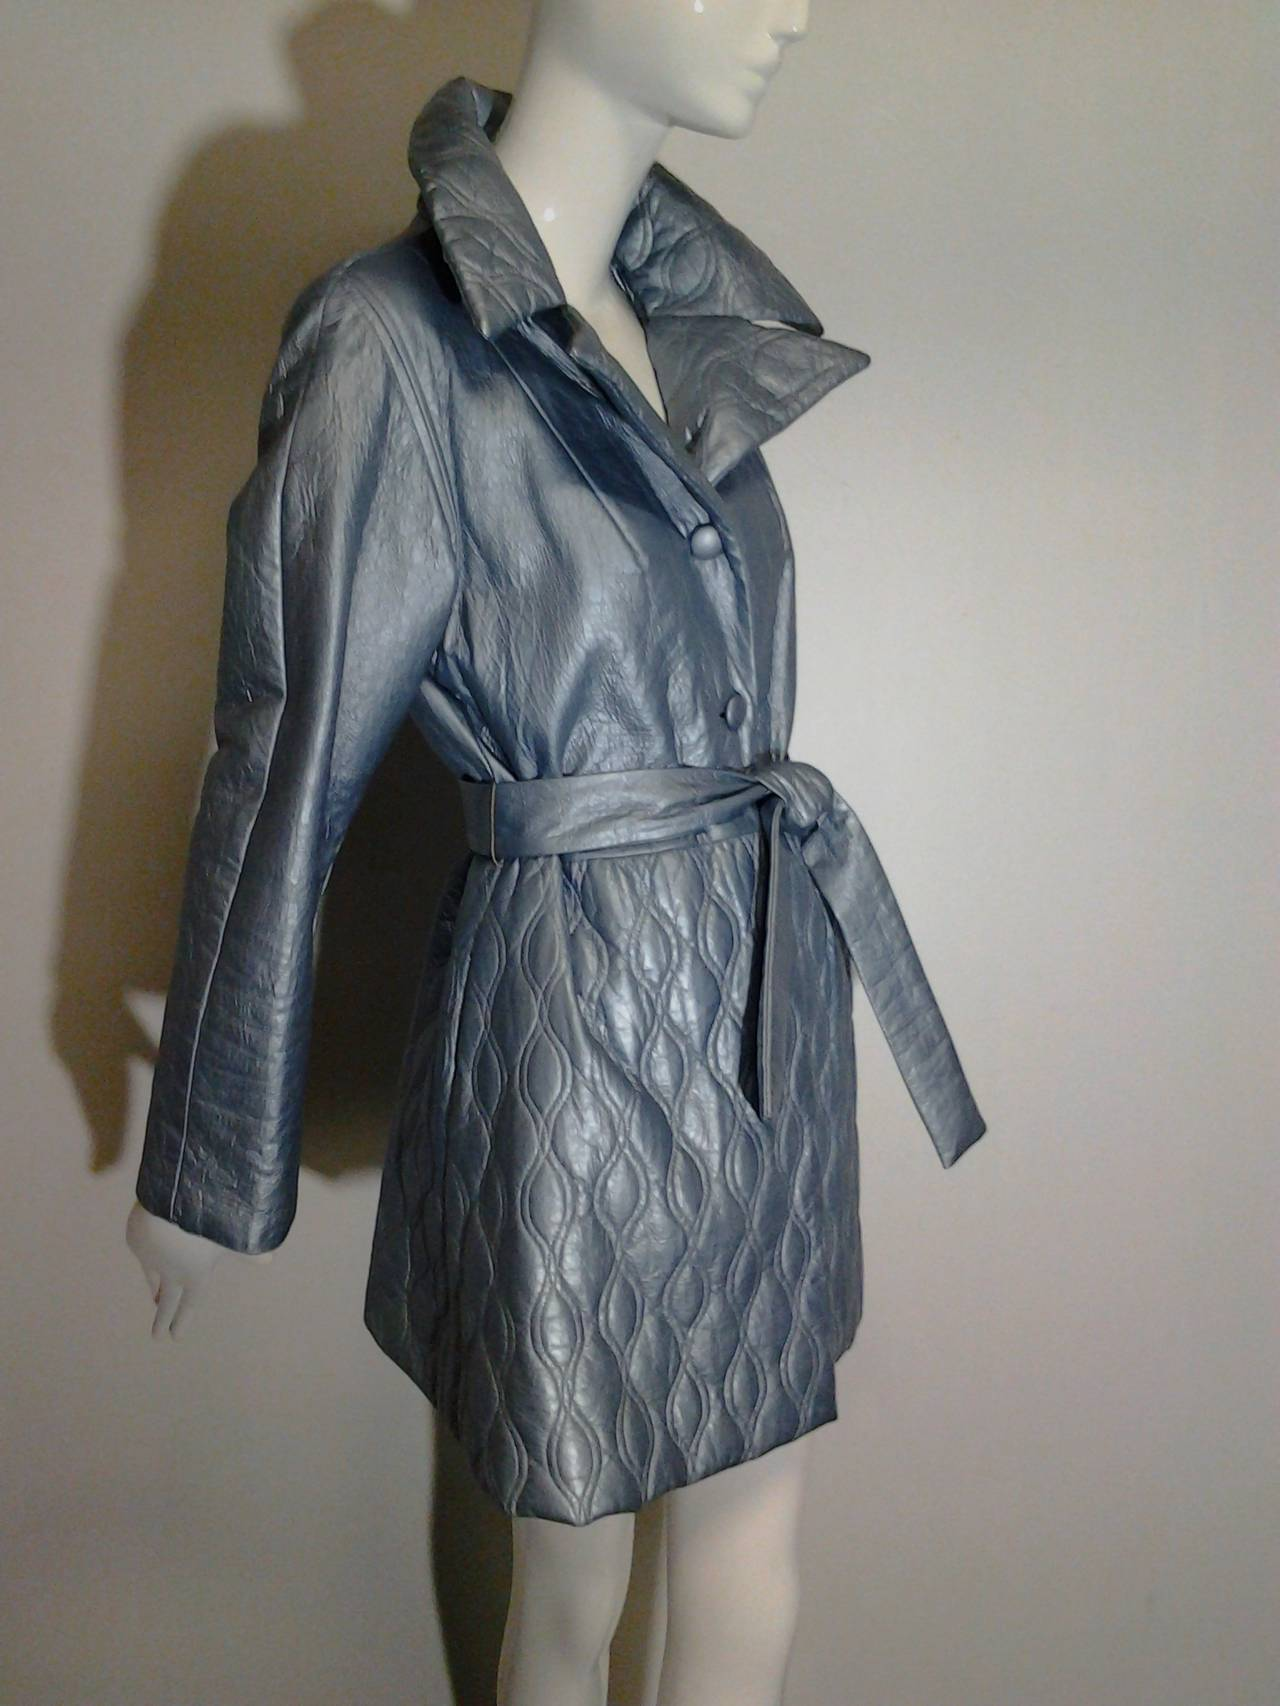 A 1960s Lilli Ann quilted pearlized pale blue vinyl car coat with button closures and self belt. Large peaked lapel collar